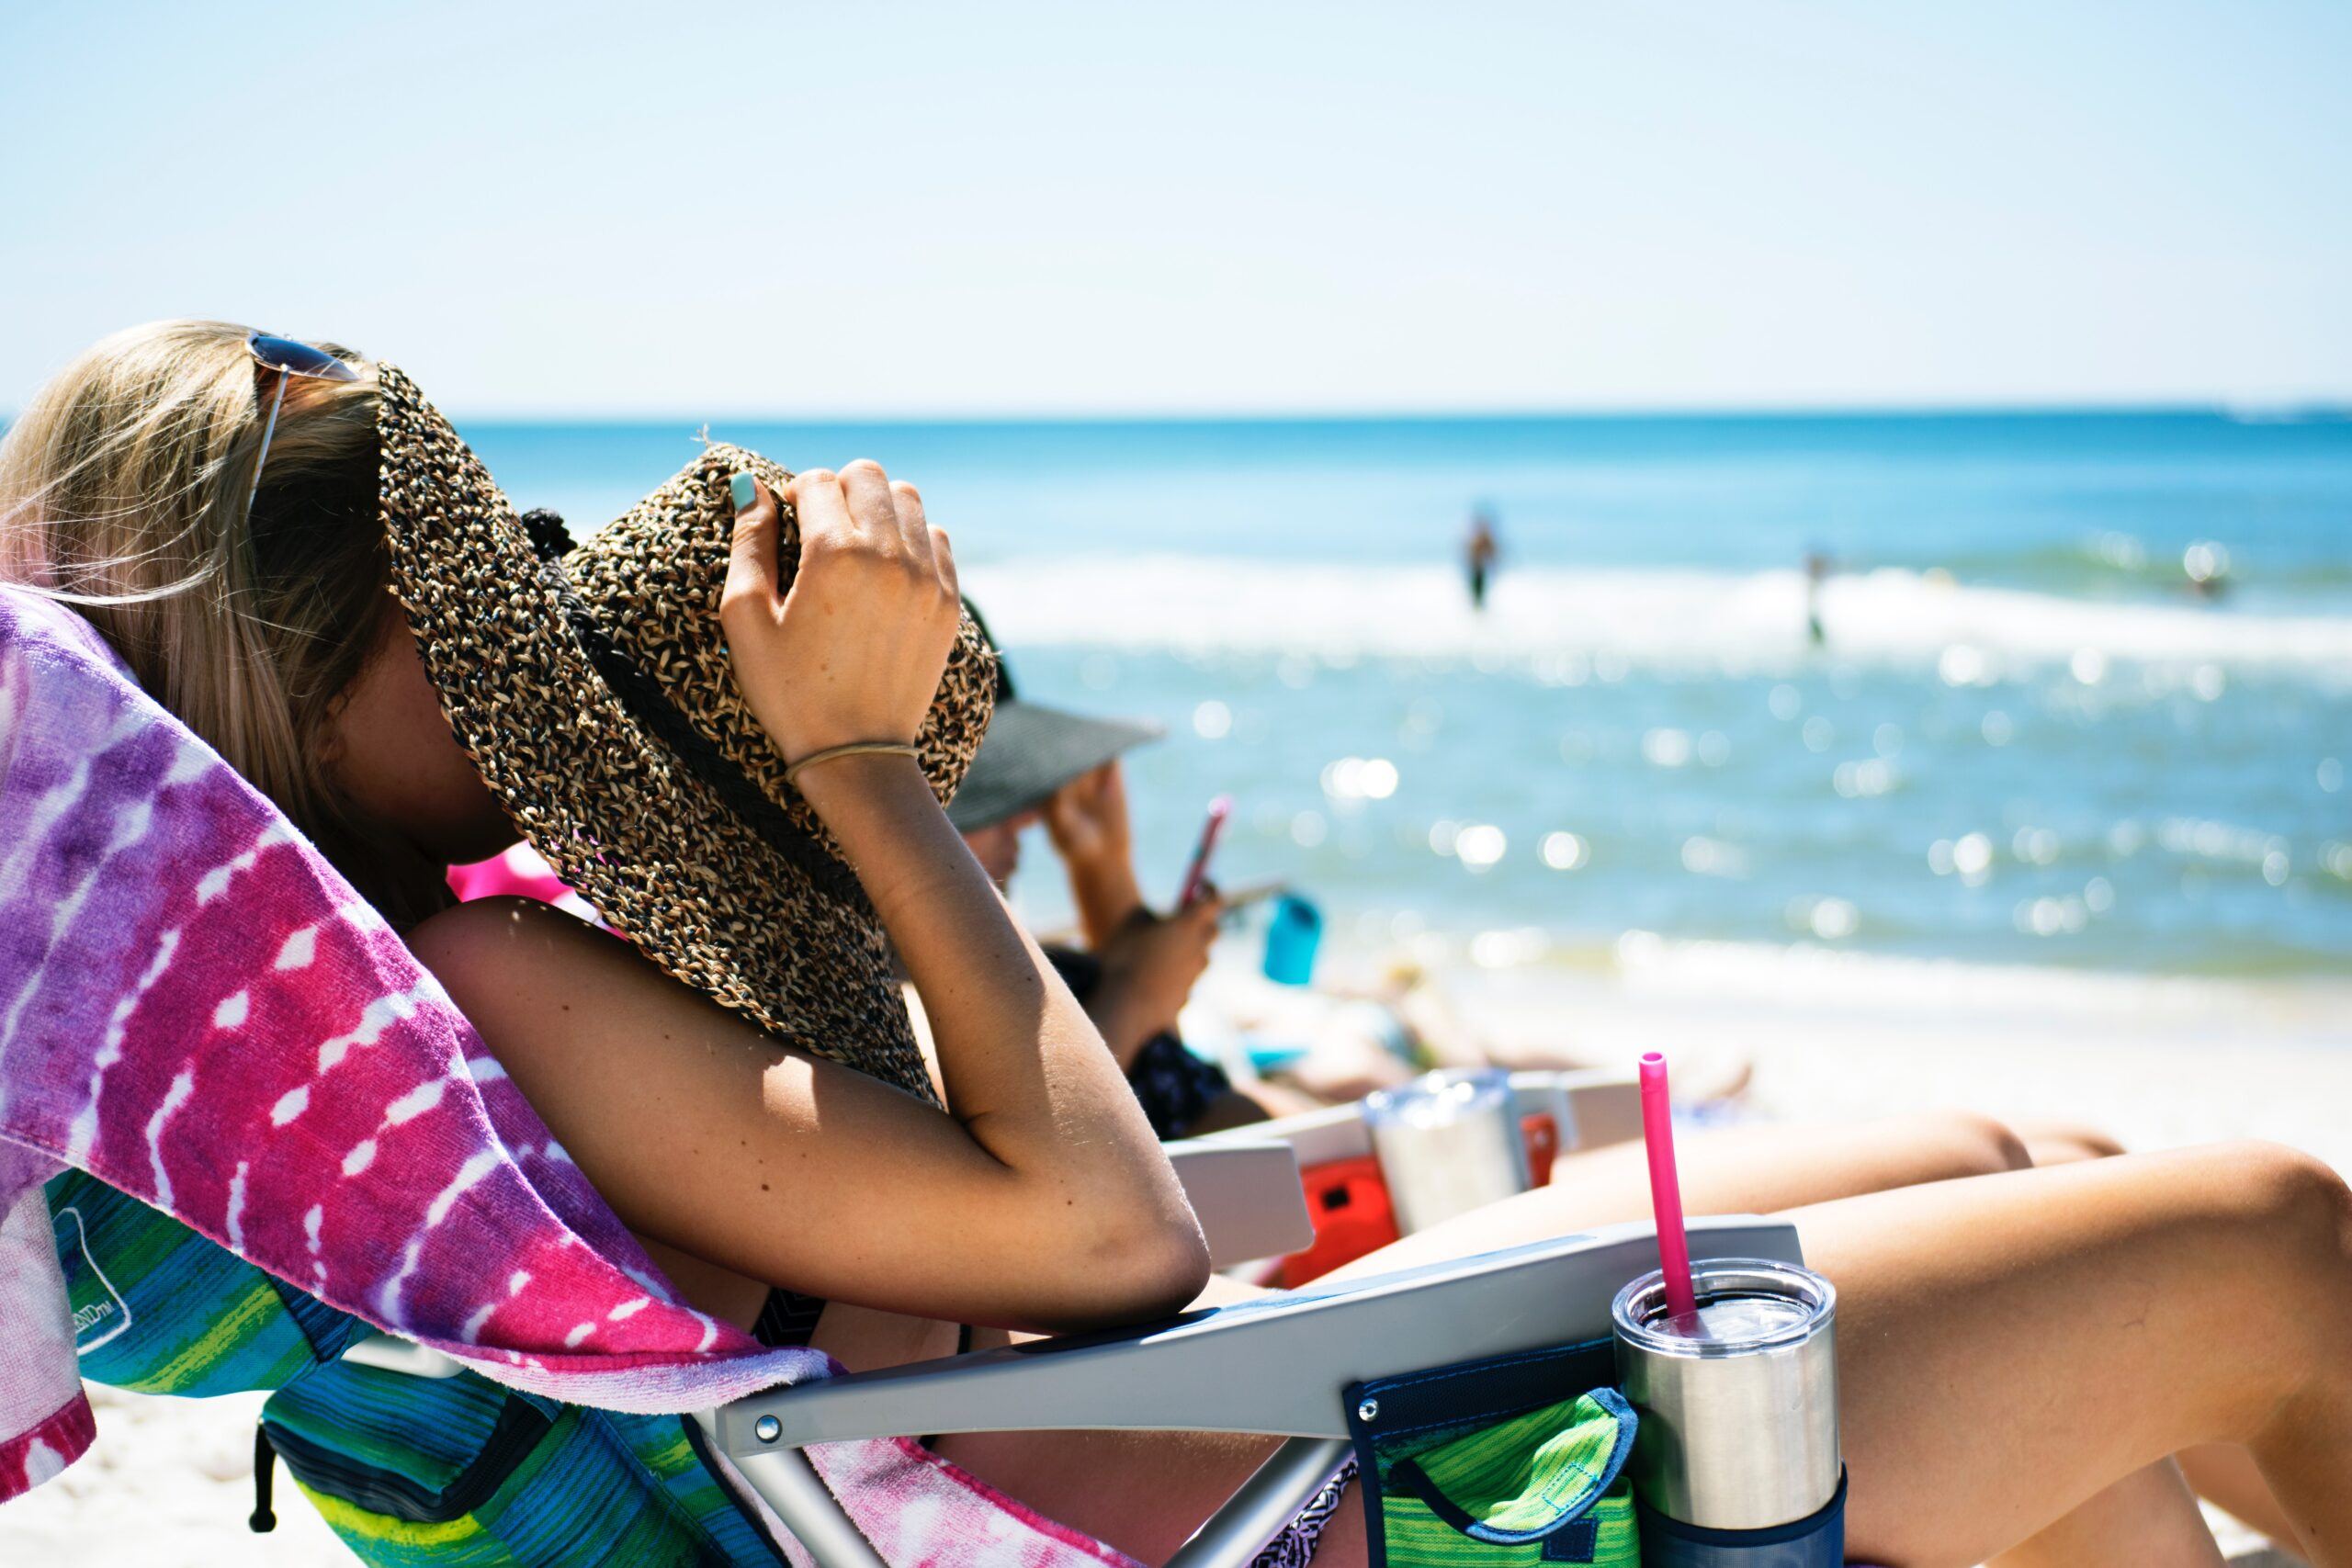 The Sun affects your health in more ways than you think. Click here to discover all the facts about sun exposure and your health.